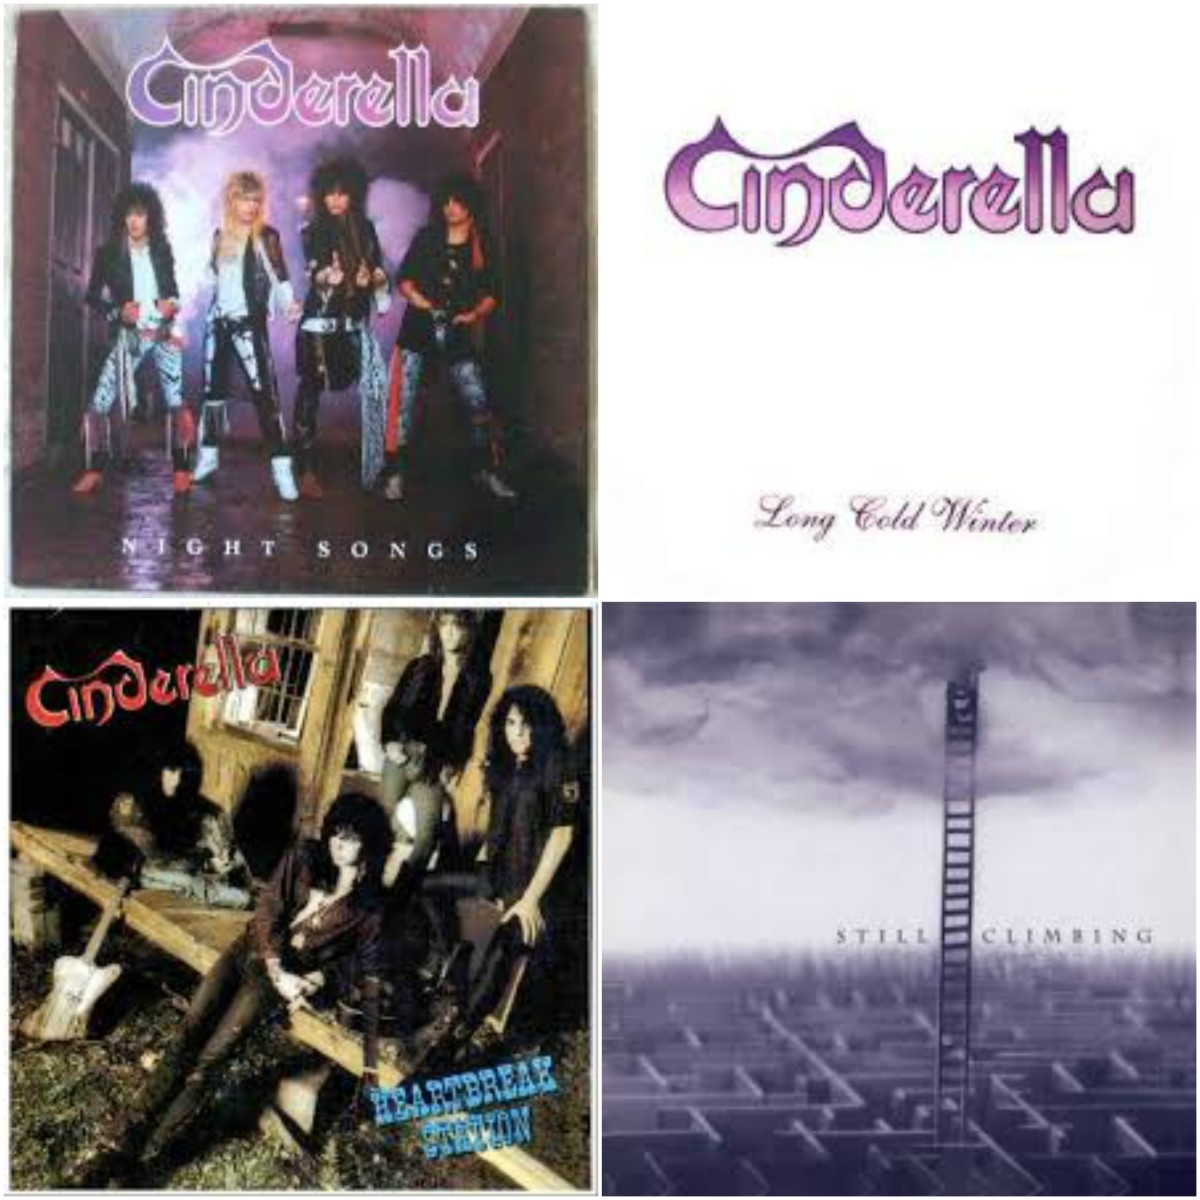 Cinderella's four studio albums: Night Songs (1986), Long Cold Winter (1988), Heartbreak Station (1990), Still Climbing (1994)